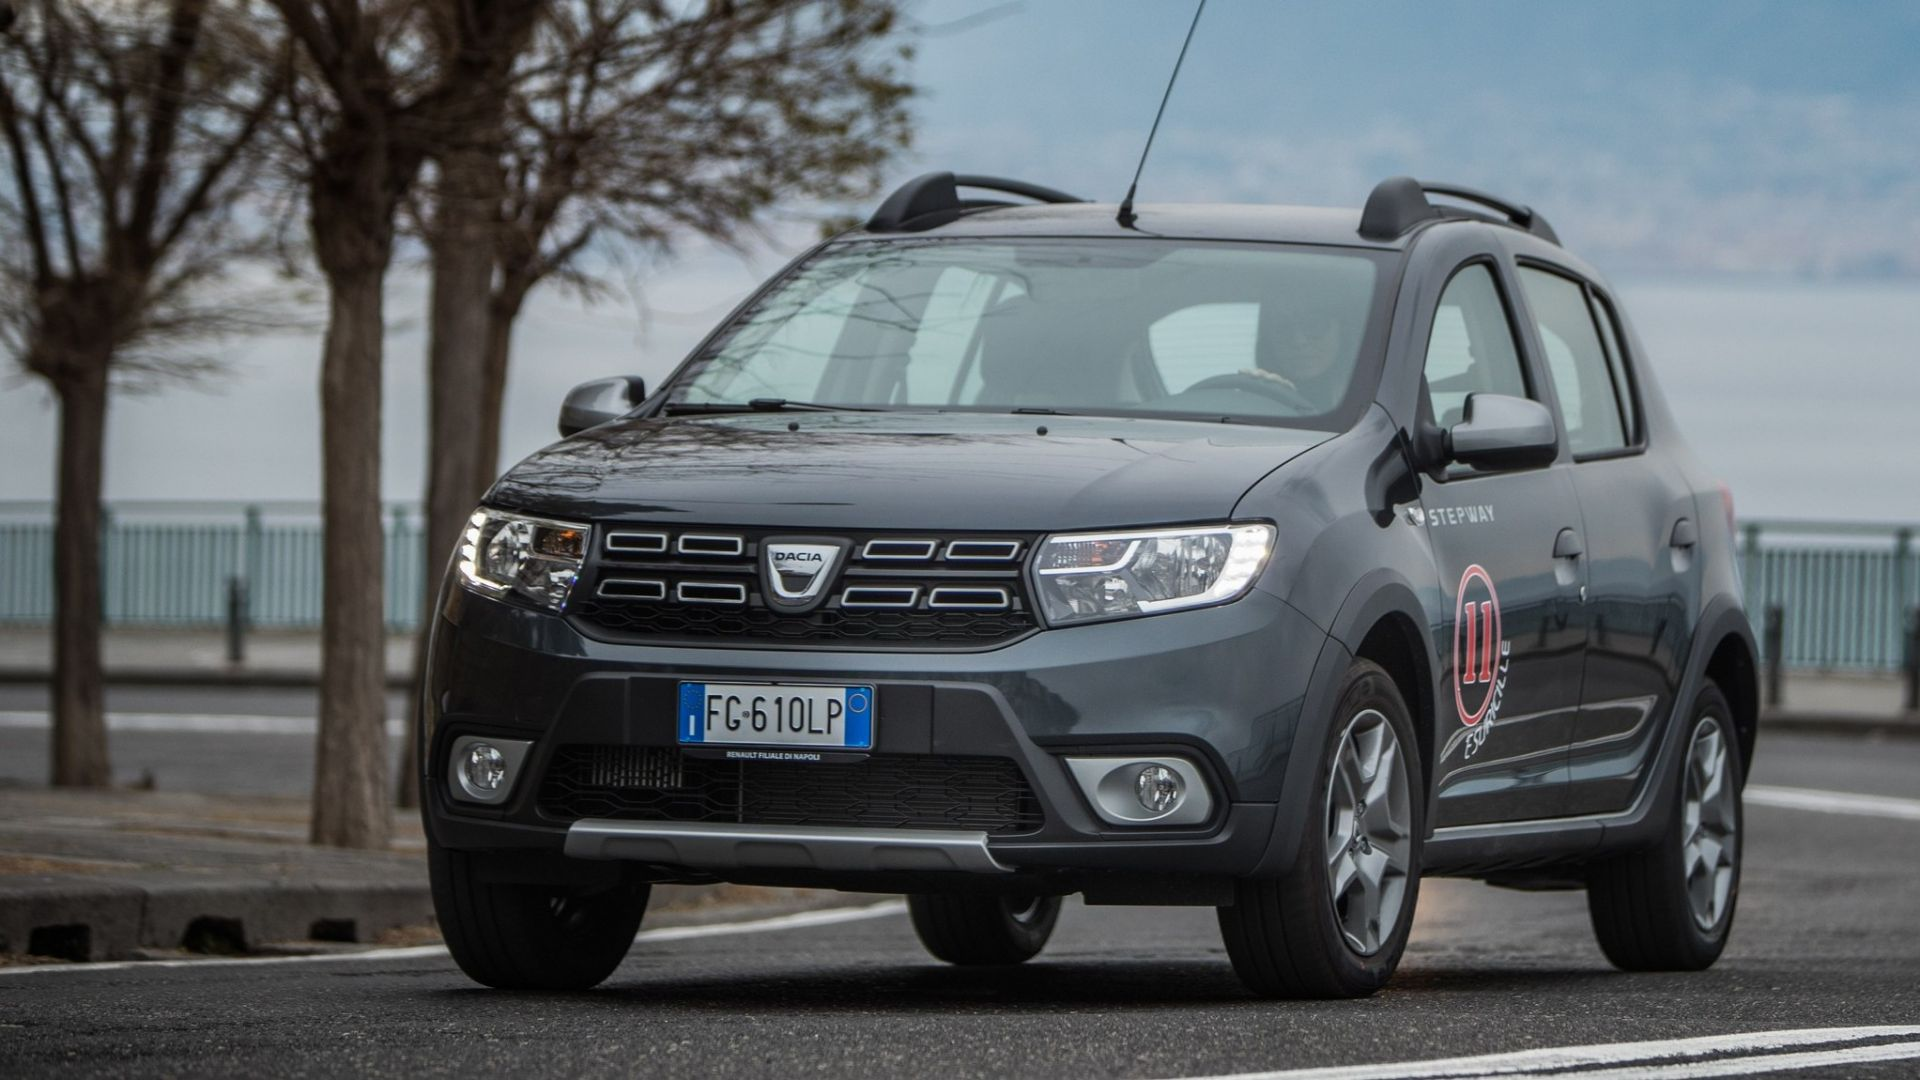 prova video dacia sandero stepway 2017 prova dotazioni prezzi video motorbox. Black Bedroom Furniture Sets. Home Design Ideas